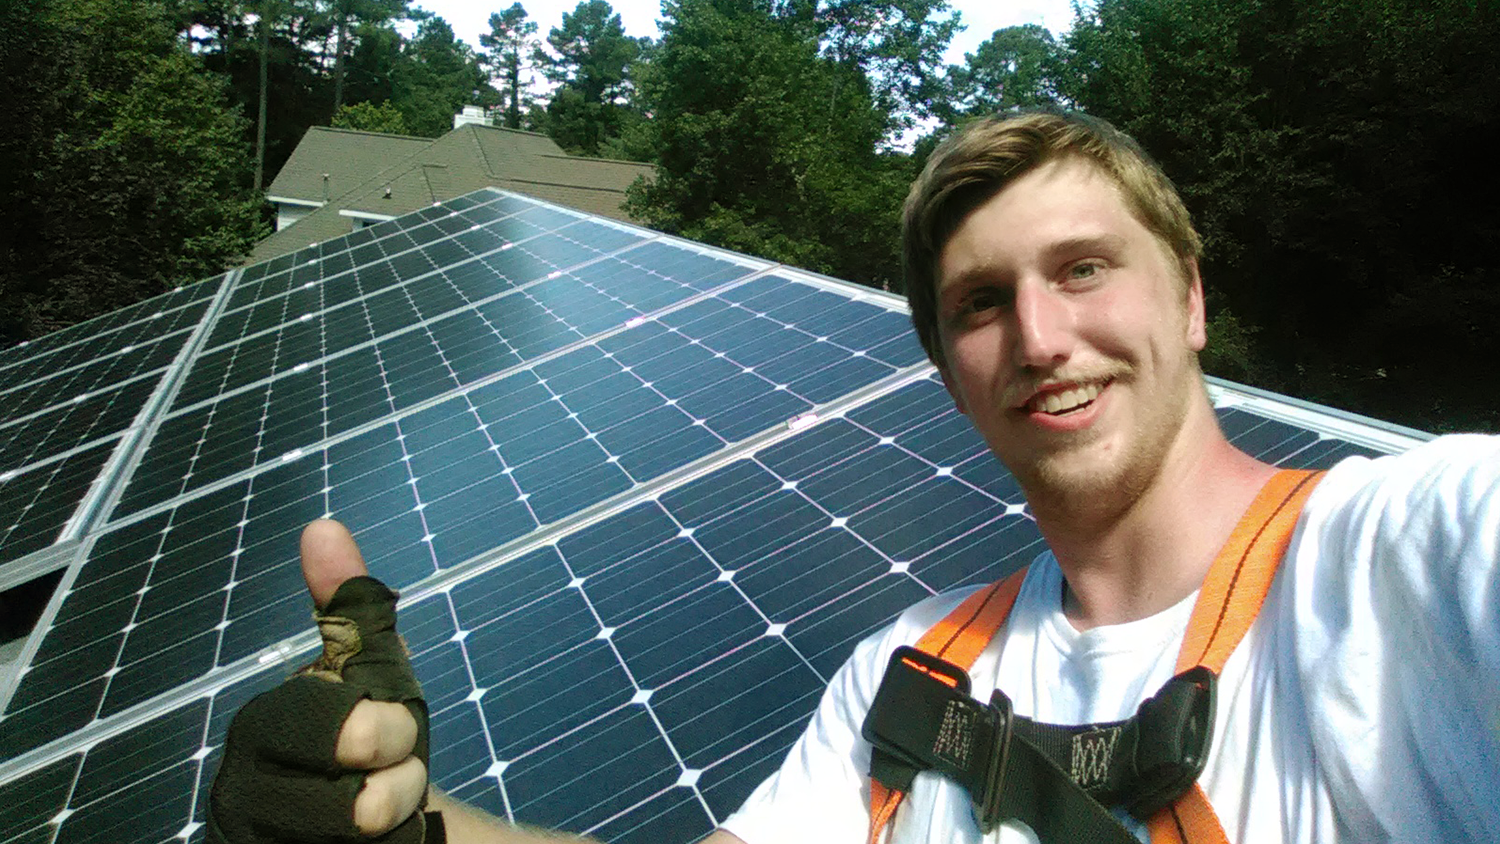 Jack Marley, Sustainable Materials and Technology major, installing solar panels